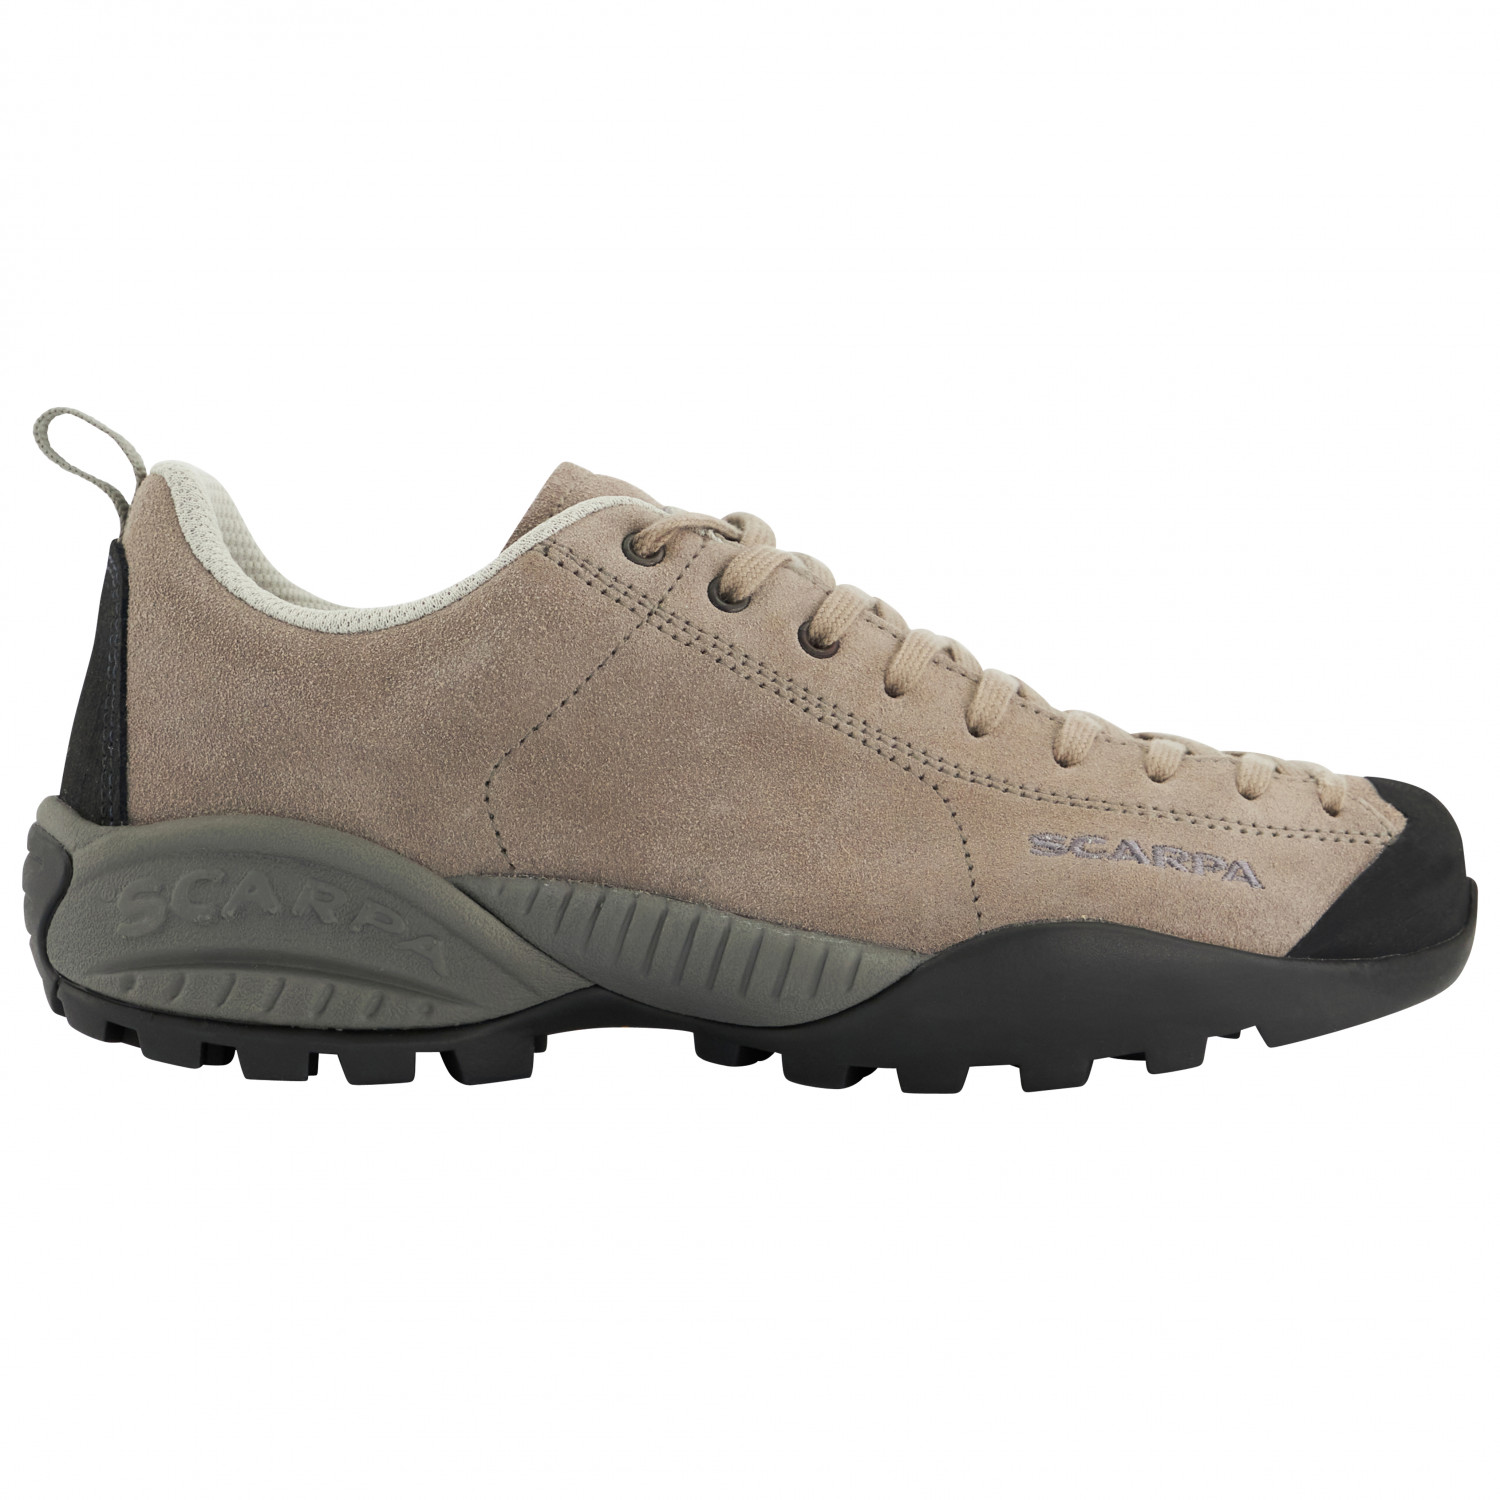 Scarpa Mojito GTX Approachschuhe Taupe